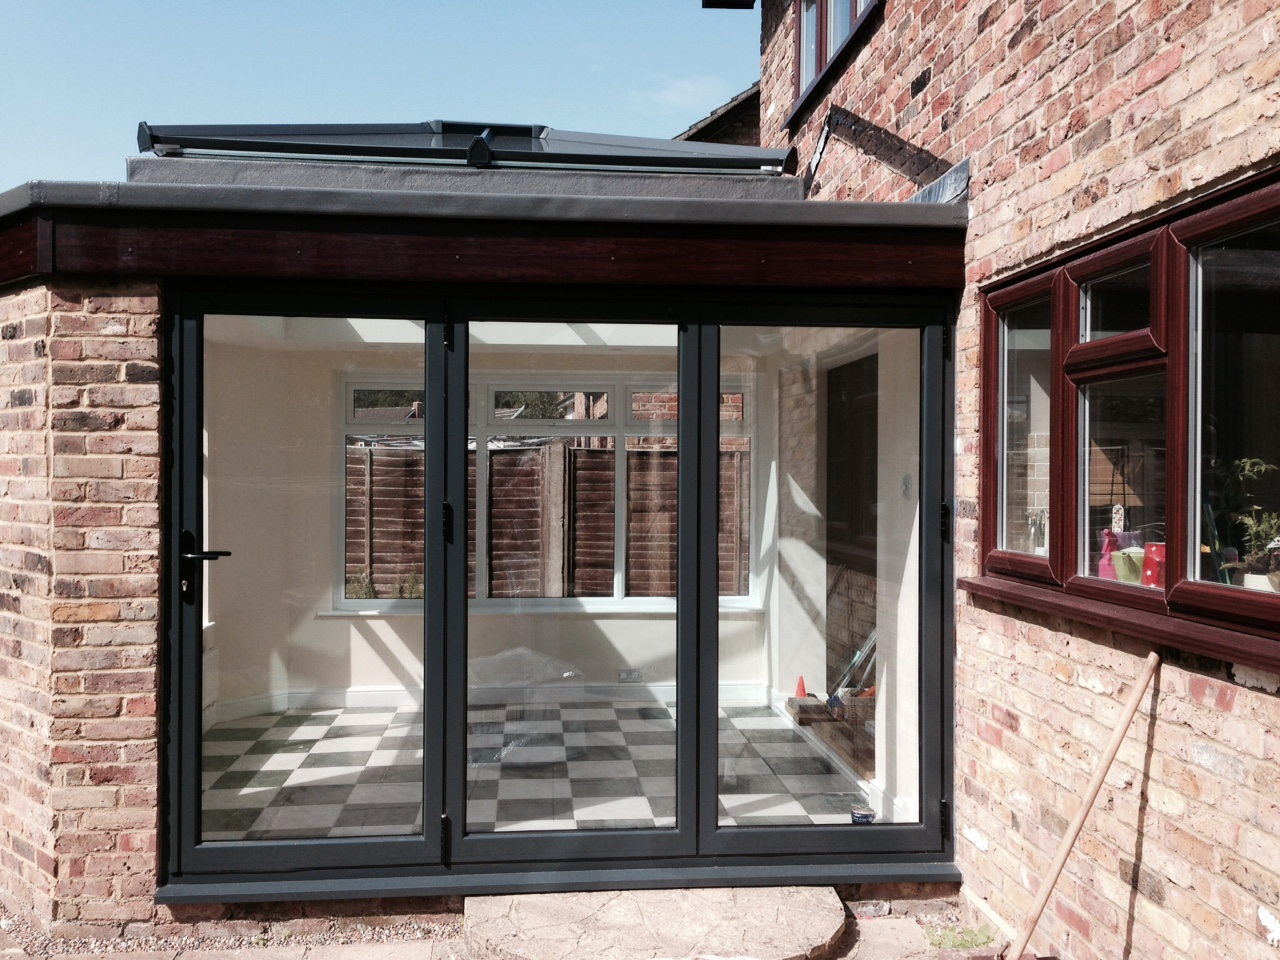 BUILD EXTENSION, BUILD EXTEND BRACKNELL, ORANGERY KITCHEN EXTENSION,  WHITE GLOSS KITCHEN, CHEAP KITCHEN EXTENSION, BUILD EXTENSION WOOSEHILL, BUILD EXTENSION,FLEE, BUILD EXTENSION WARFIELD, BRACKNELL